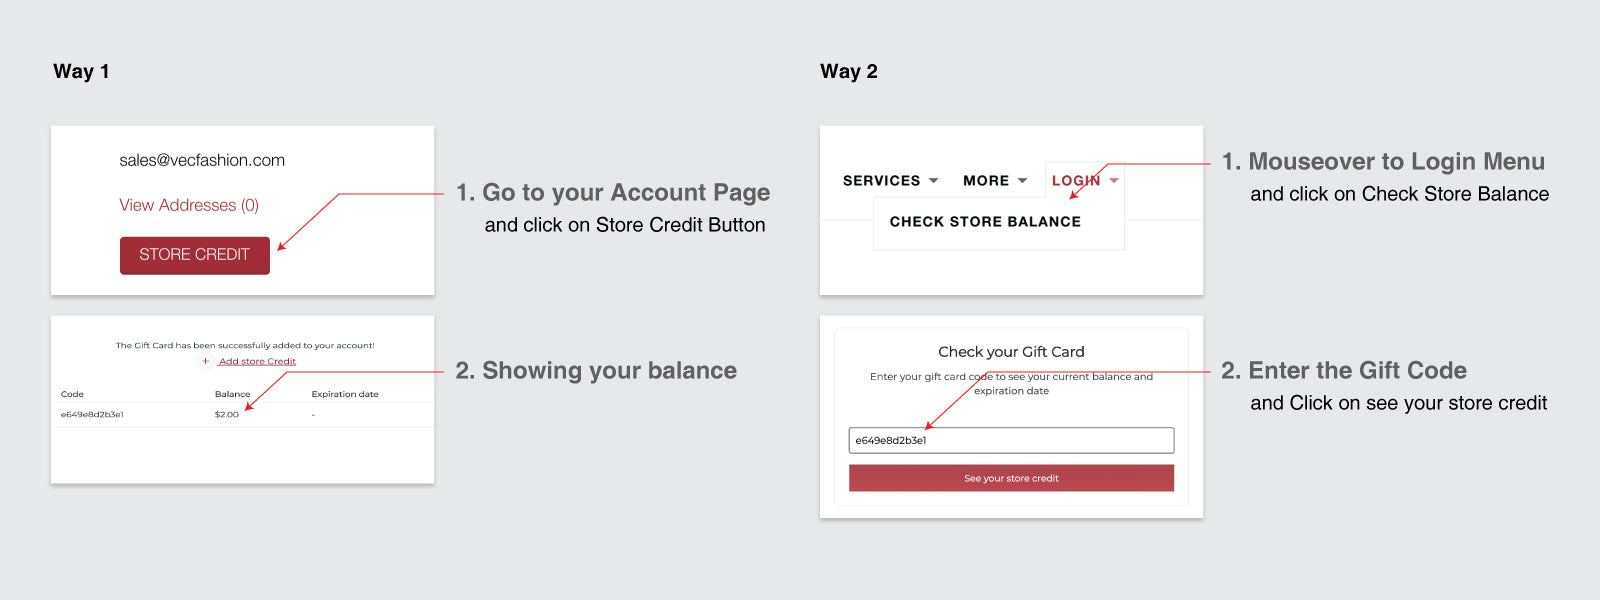 how to check your account balance